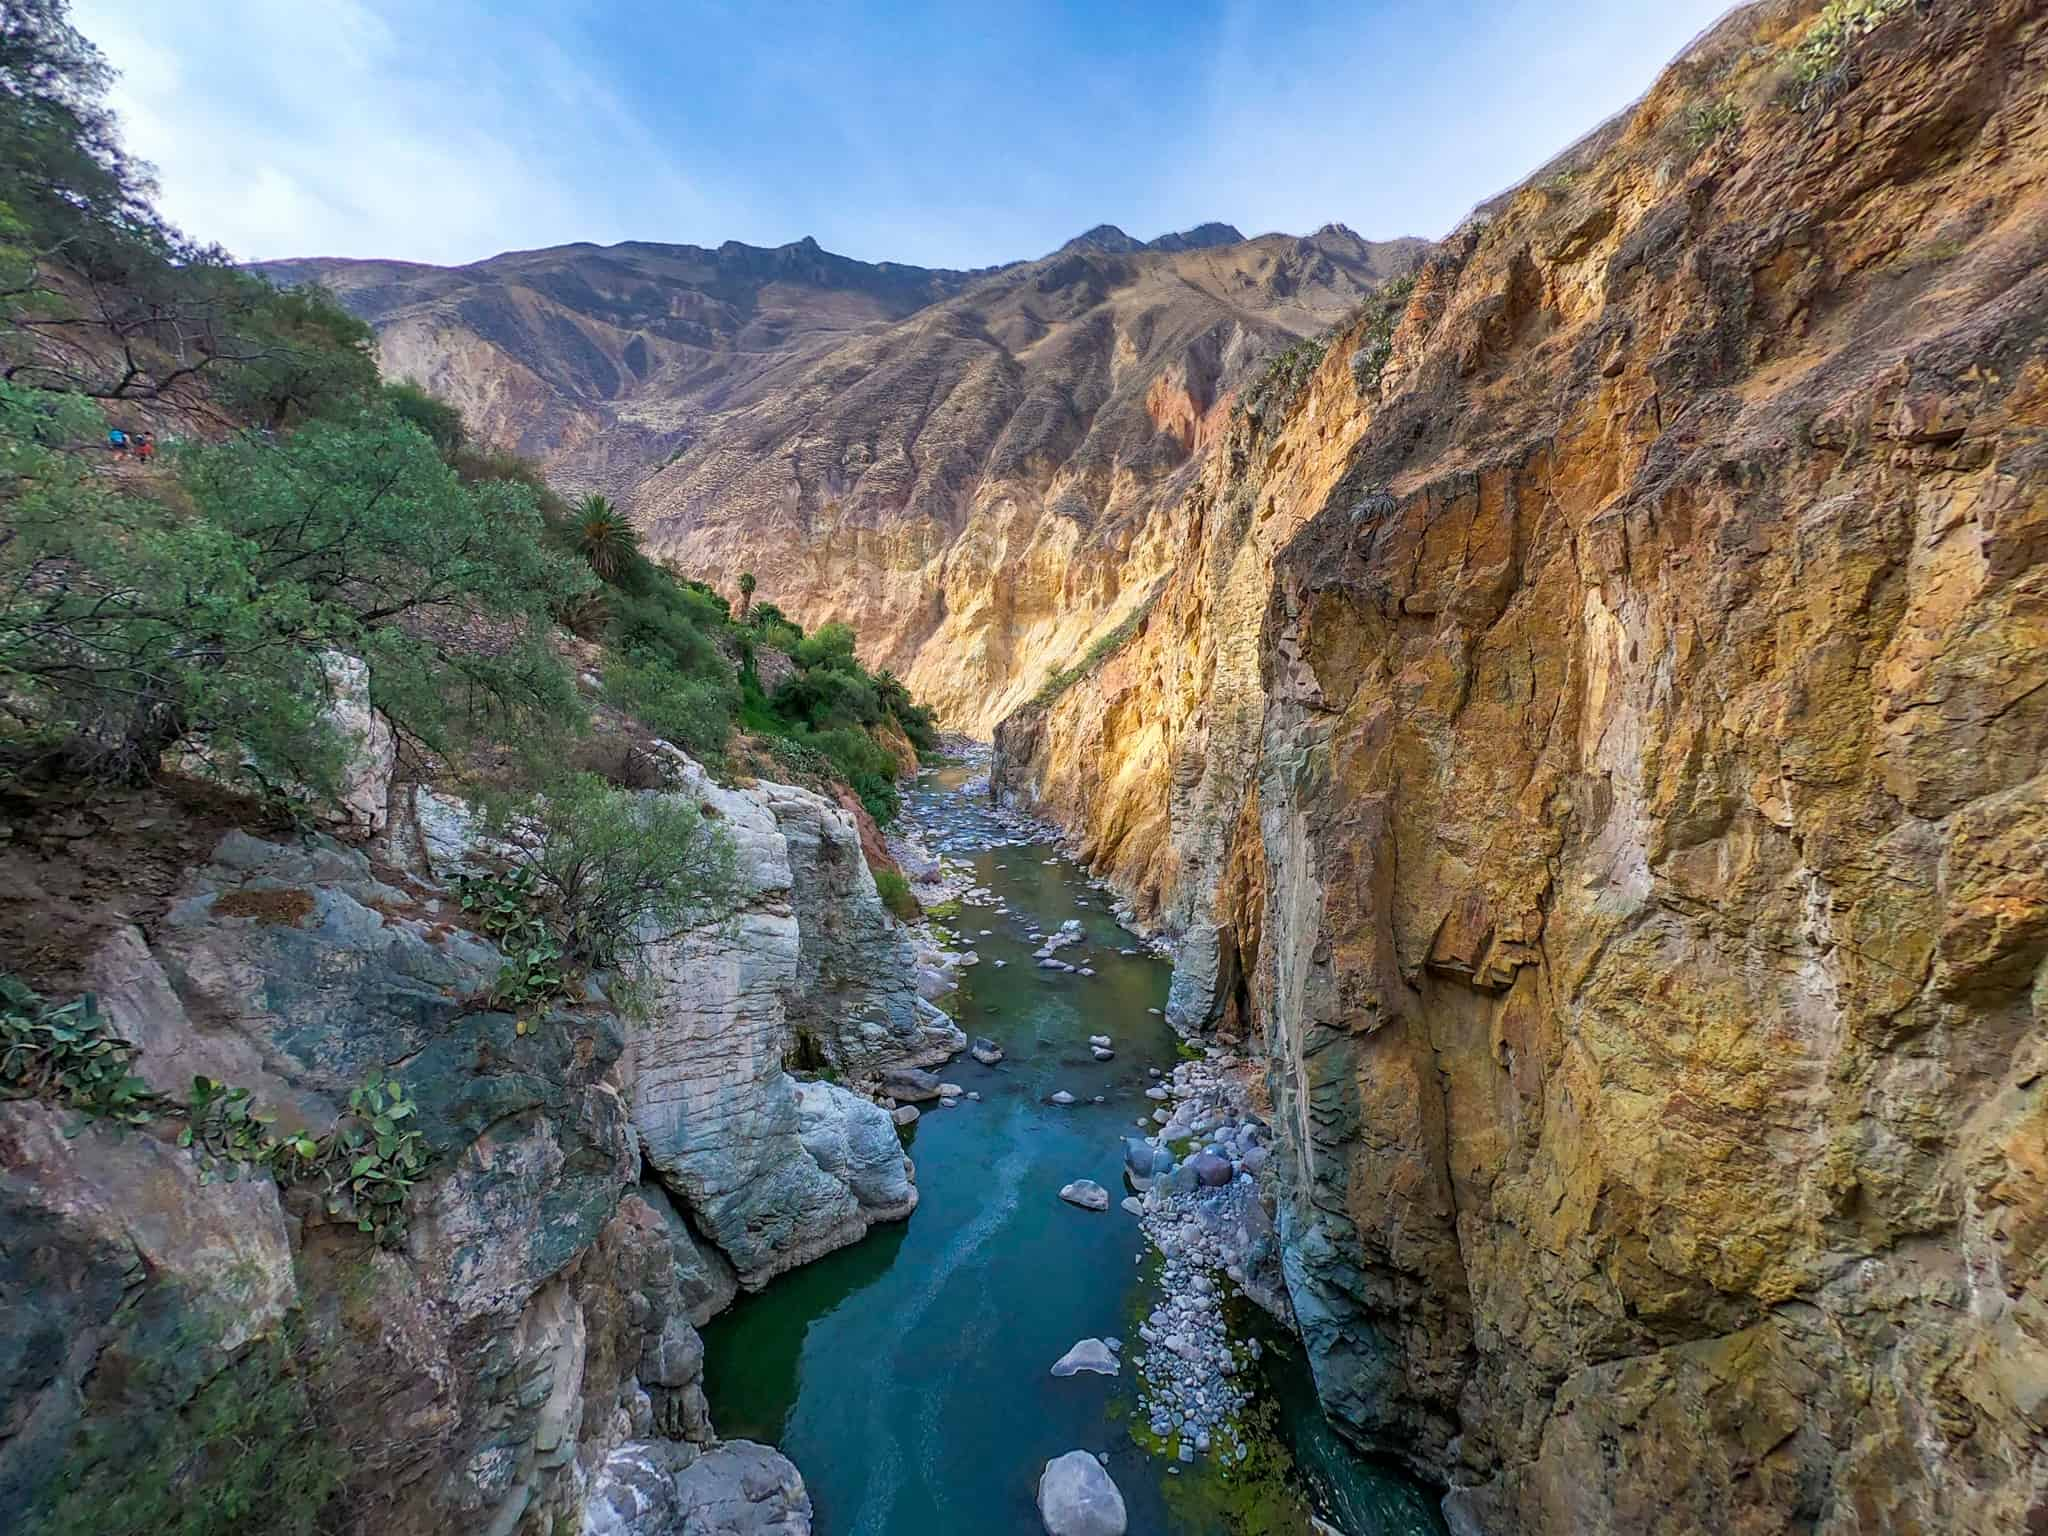 Hike down into Colca Canyon